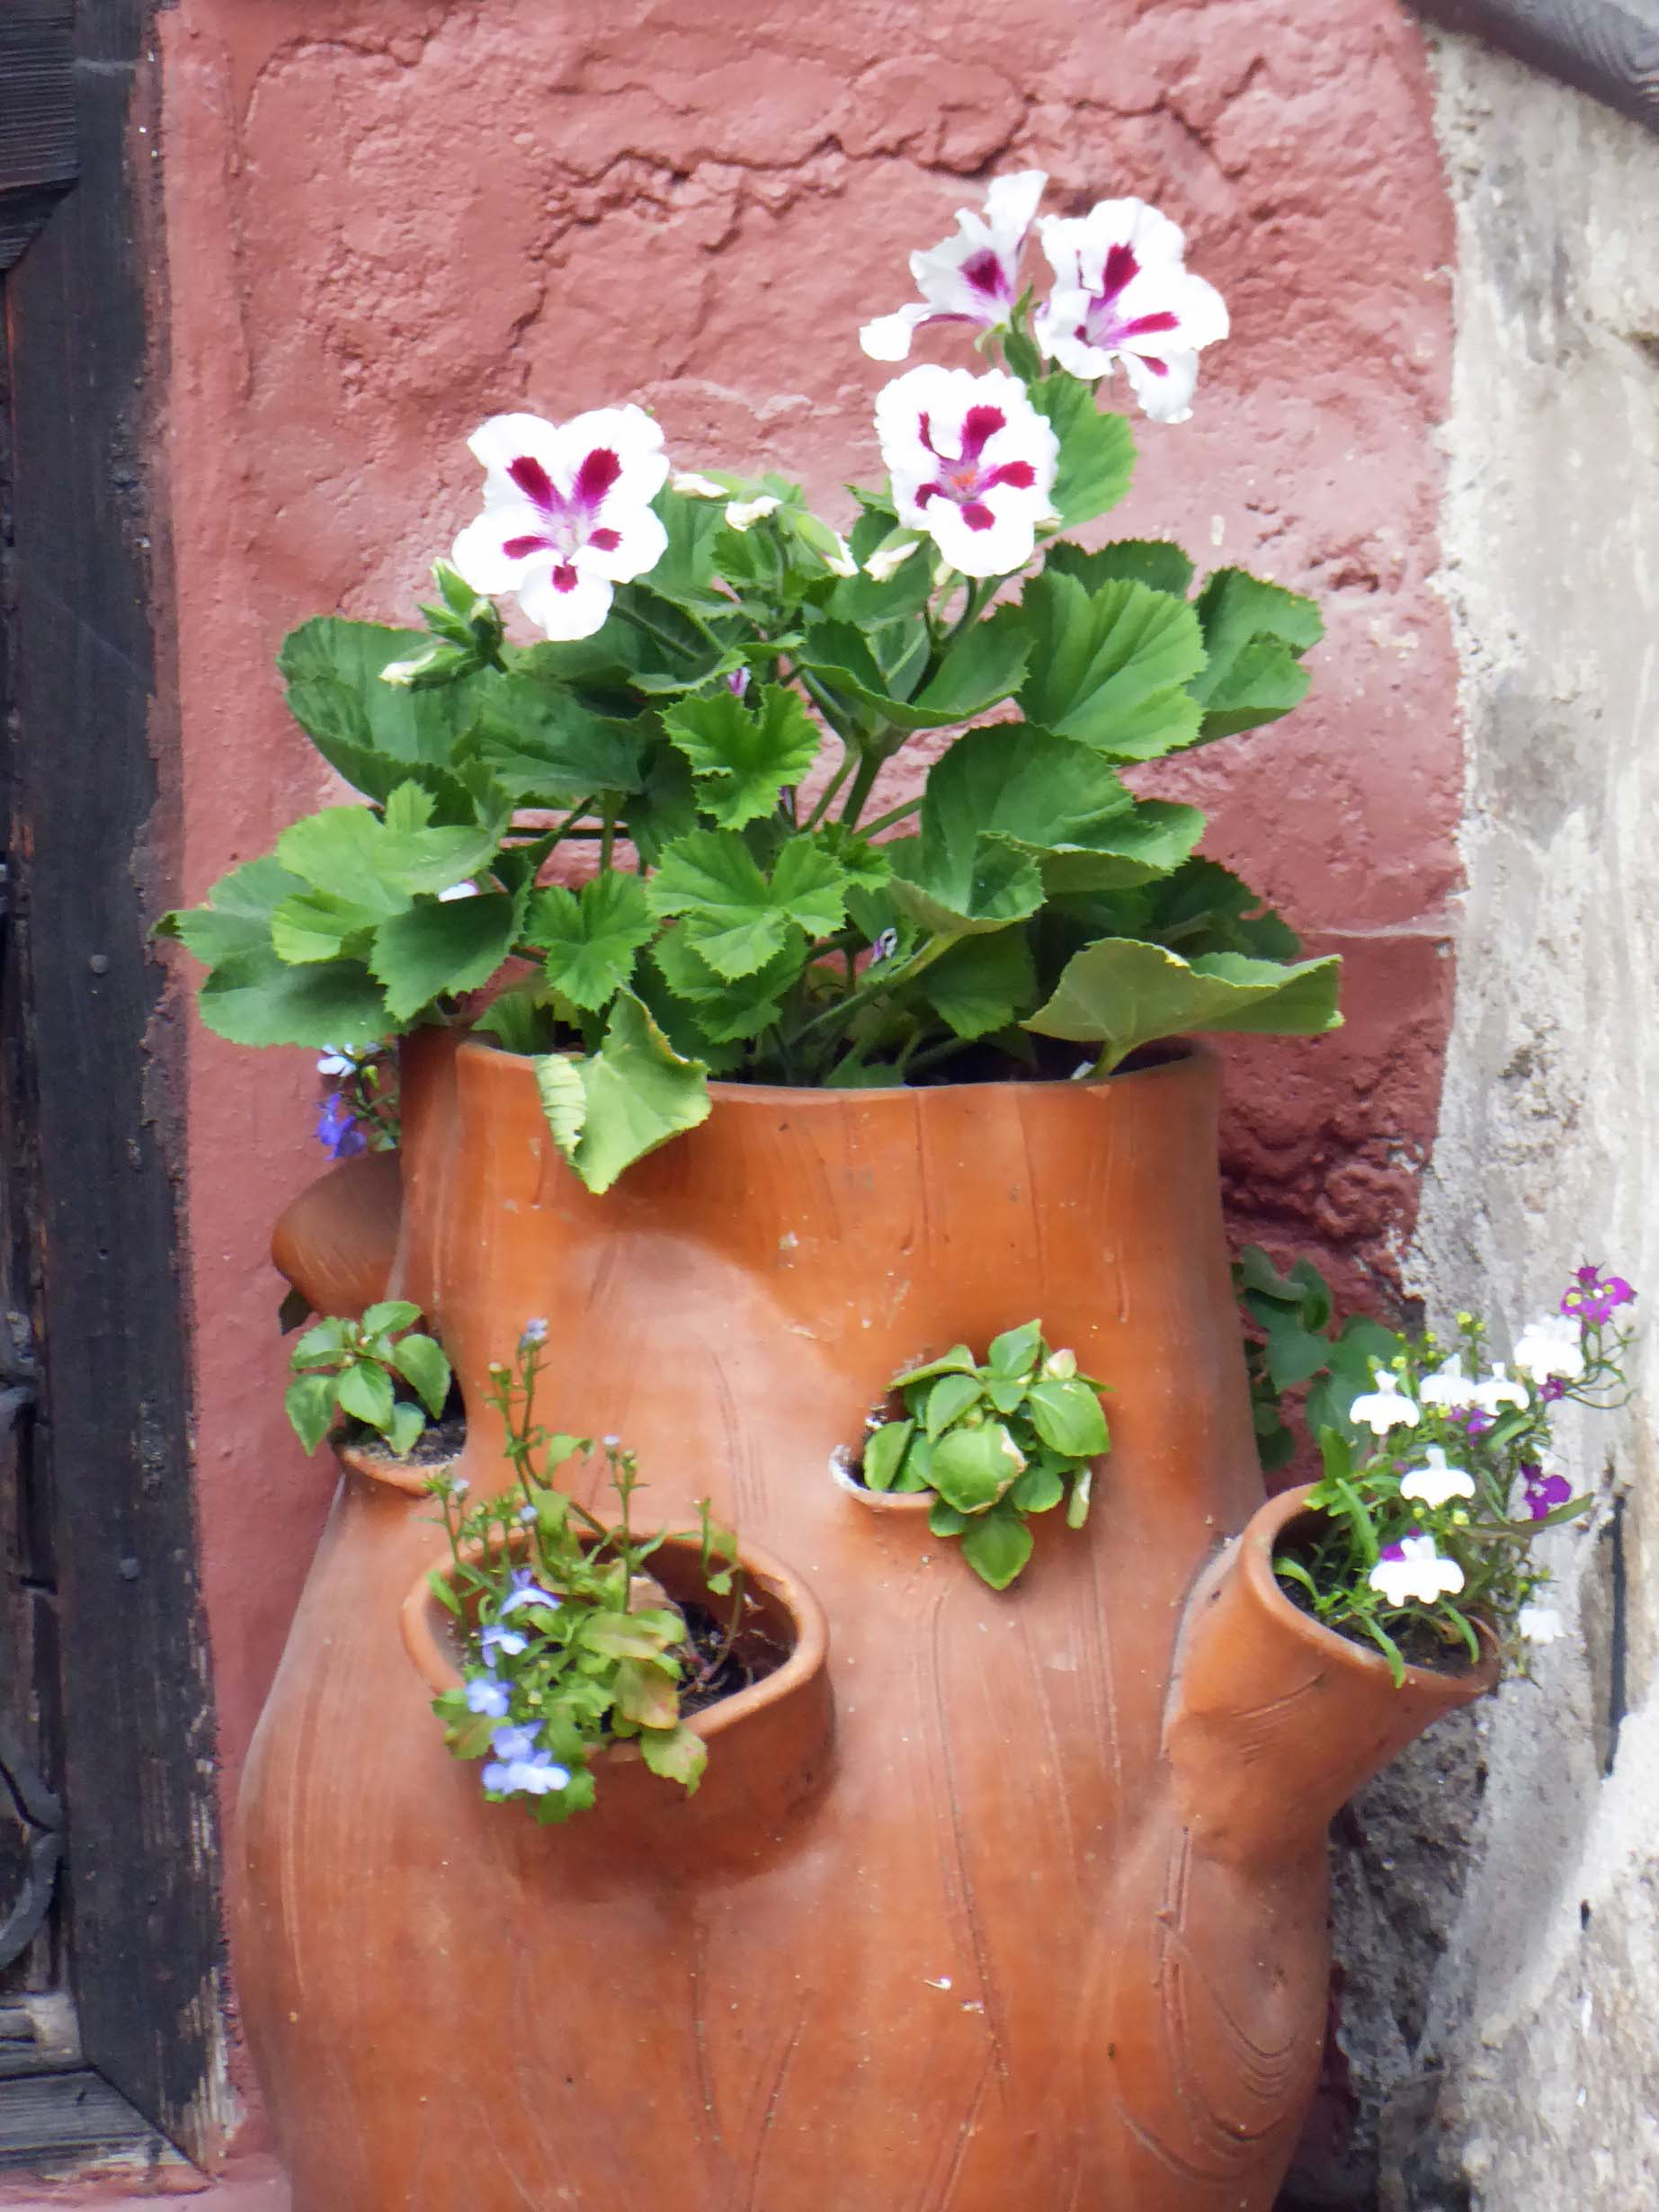 Terracotta planter with pink and white flowers